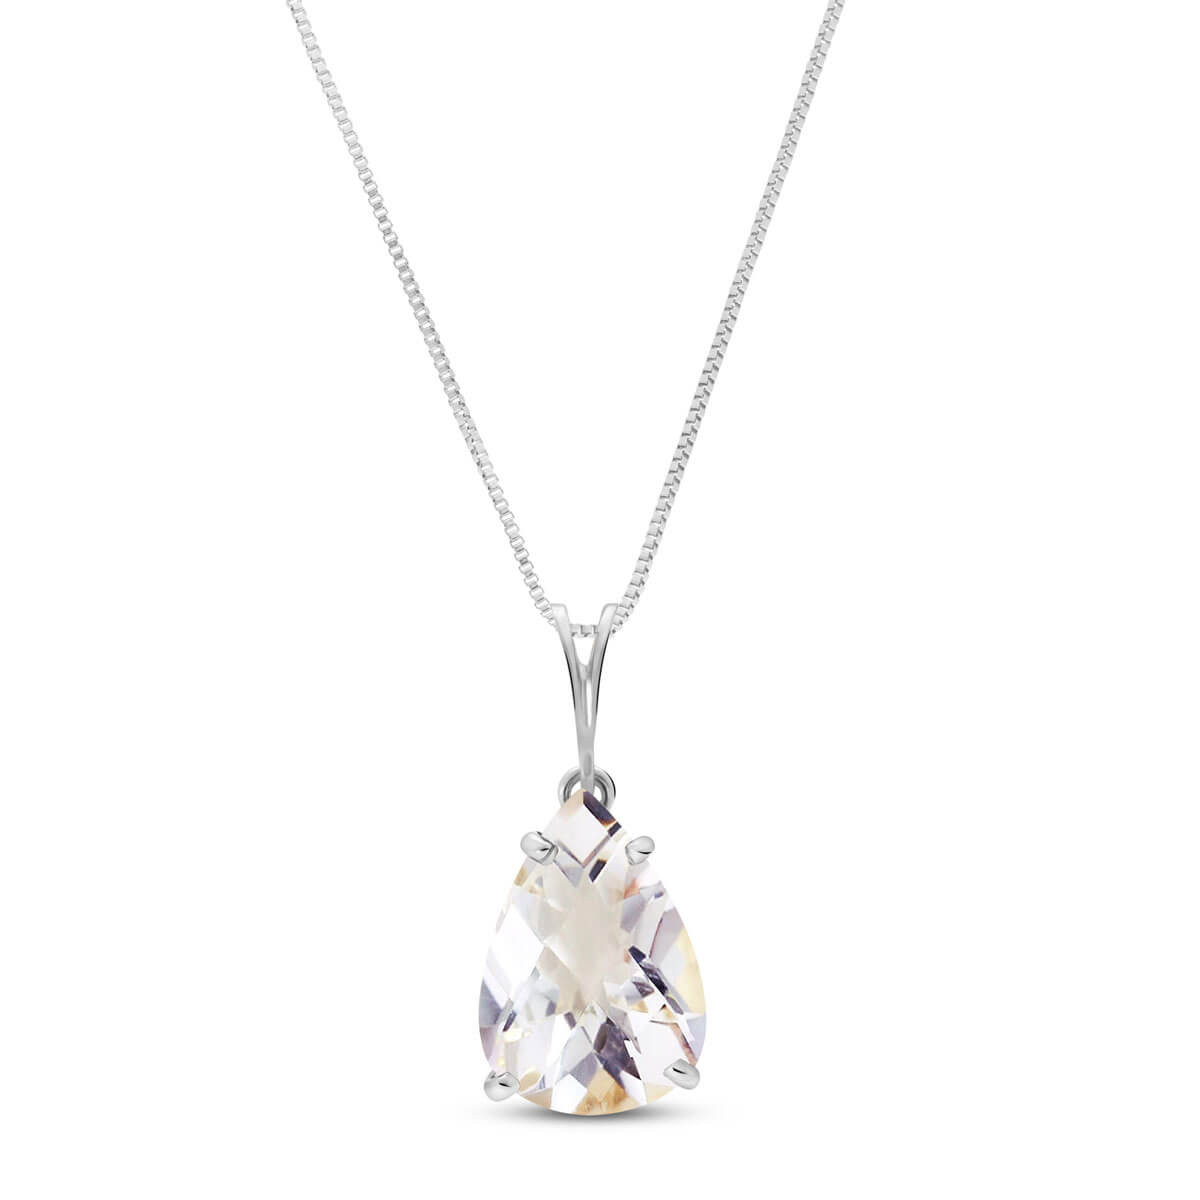 White Topaz Pear Drop Pendant Necklace 5 ct in 9ct White Gold